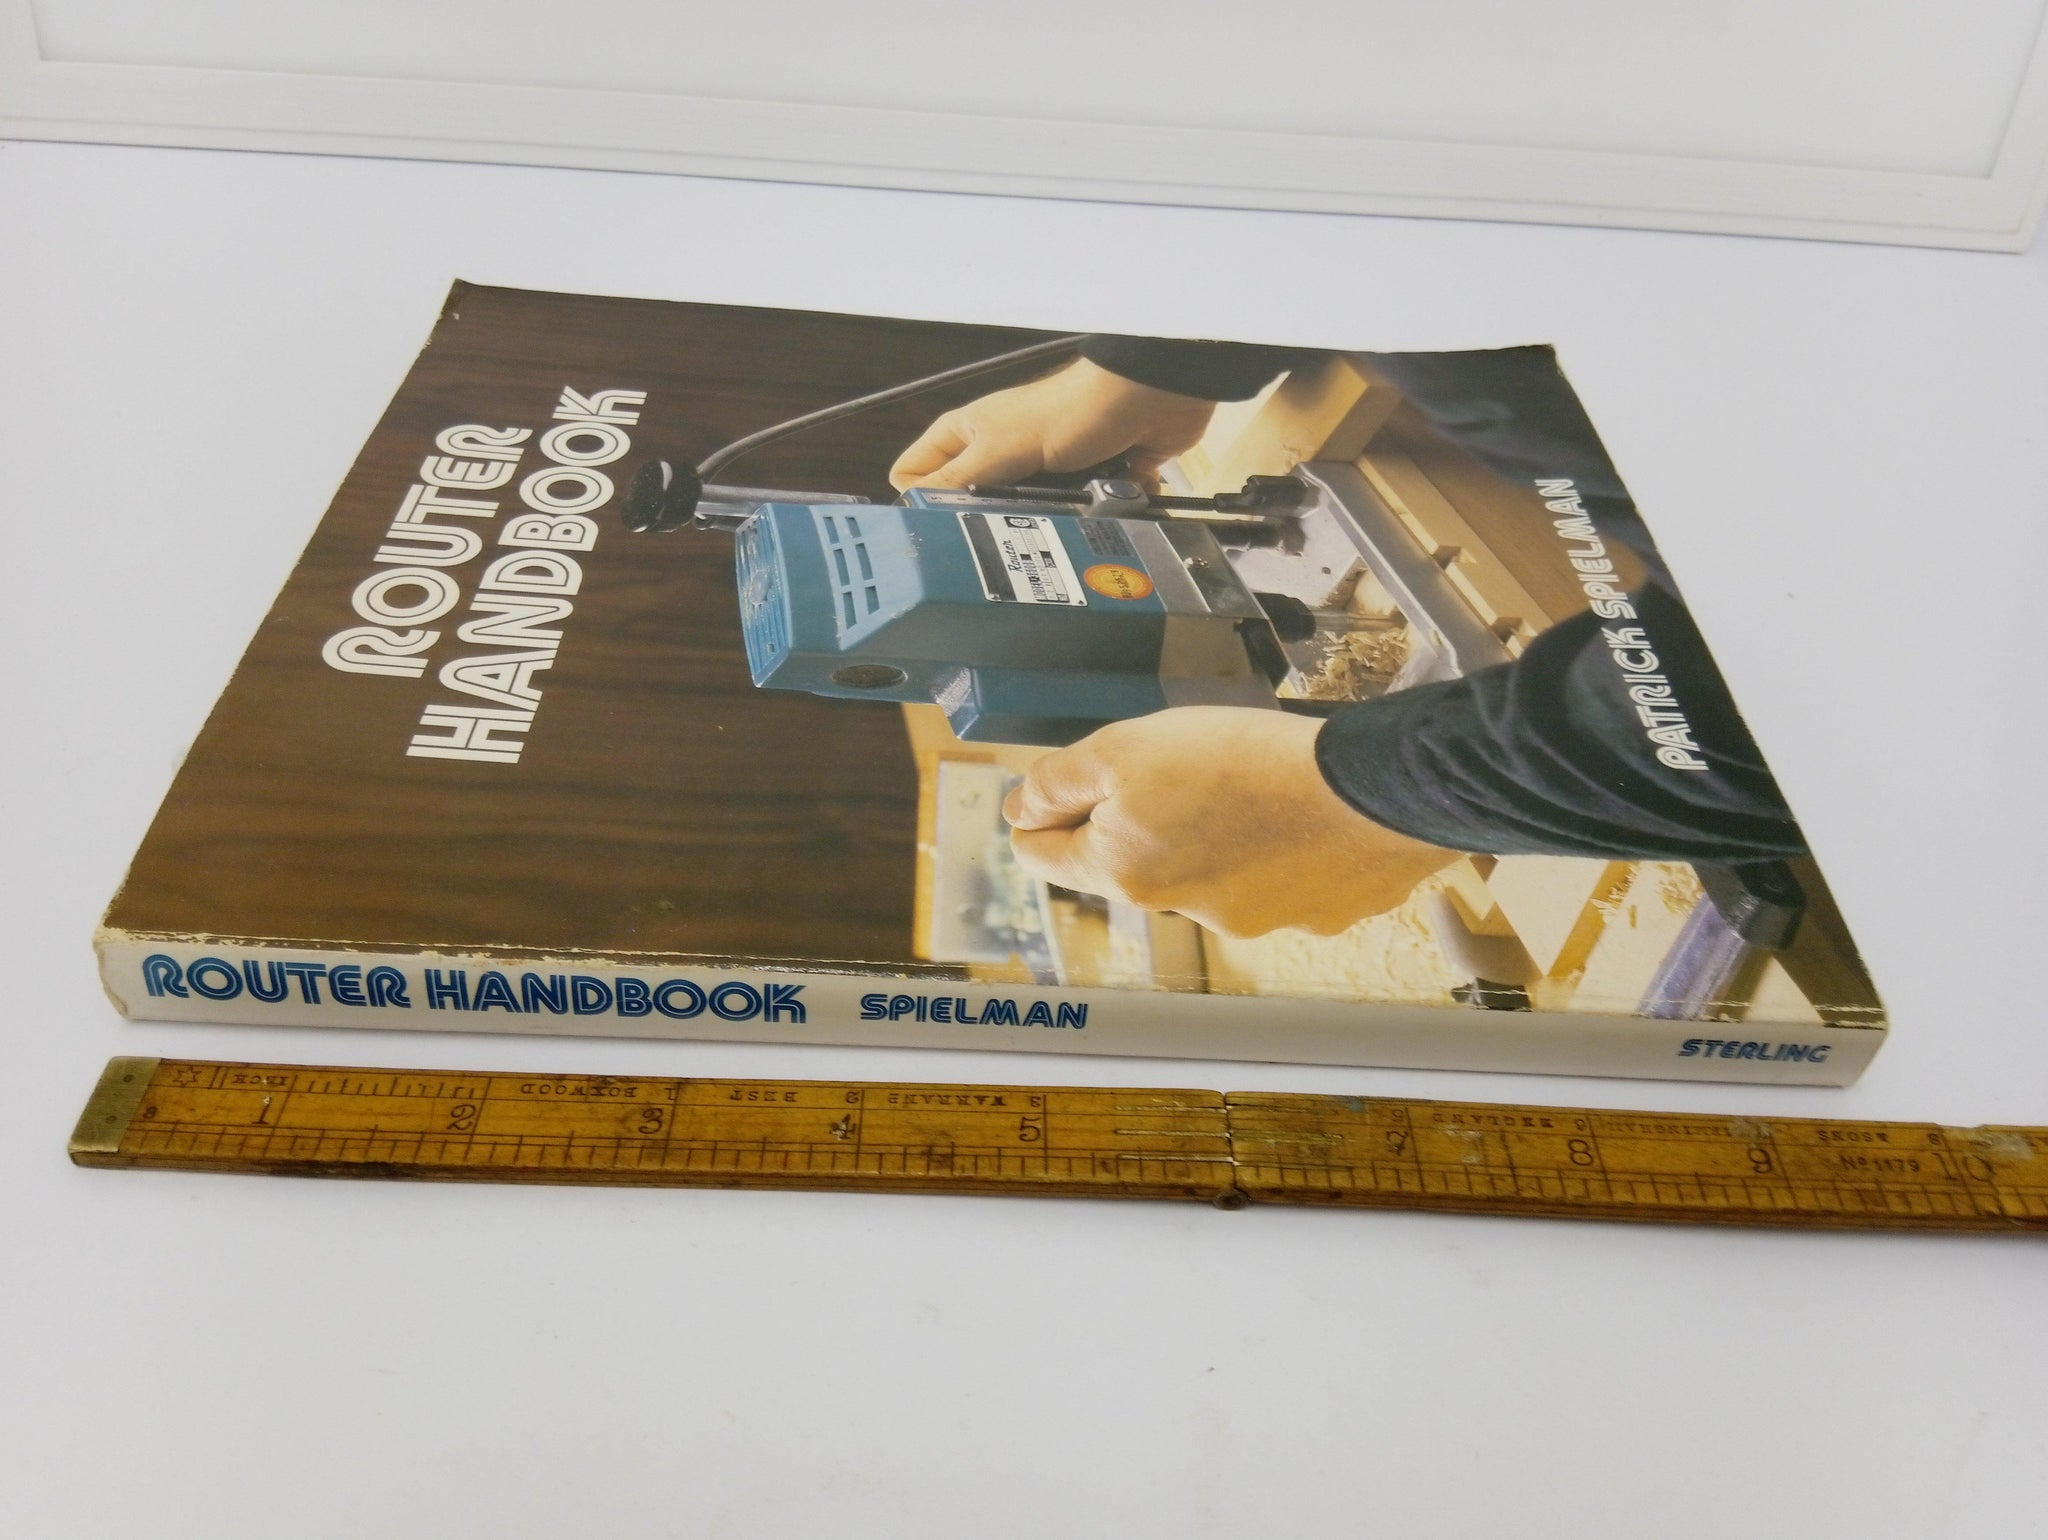 The Router Handbook by Patrick Spielman Good Condition 14307-The Vintage Tool Shop